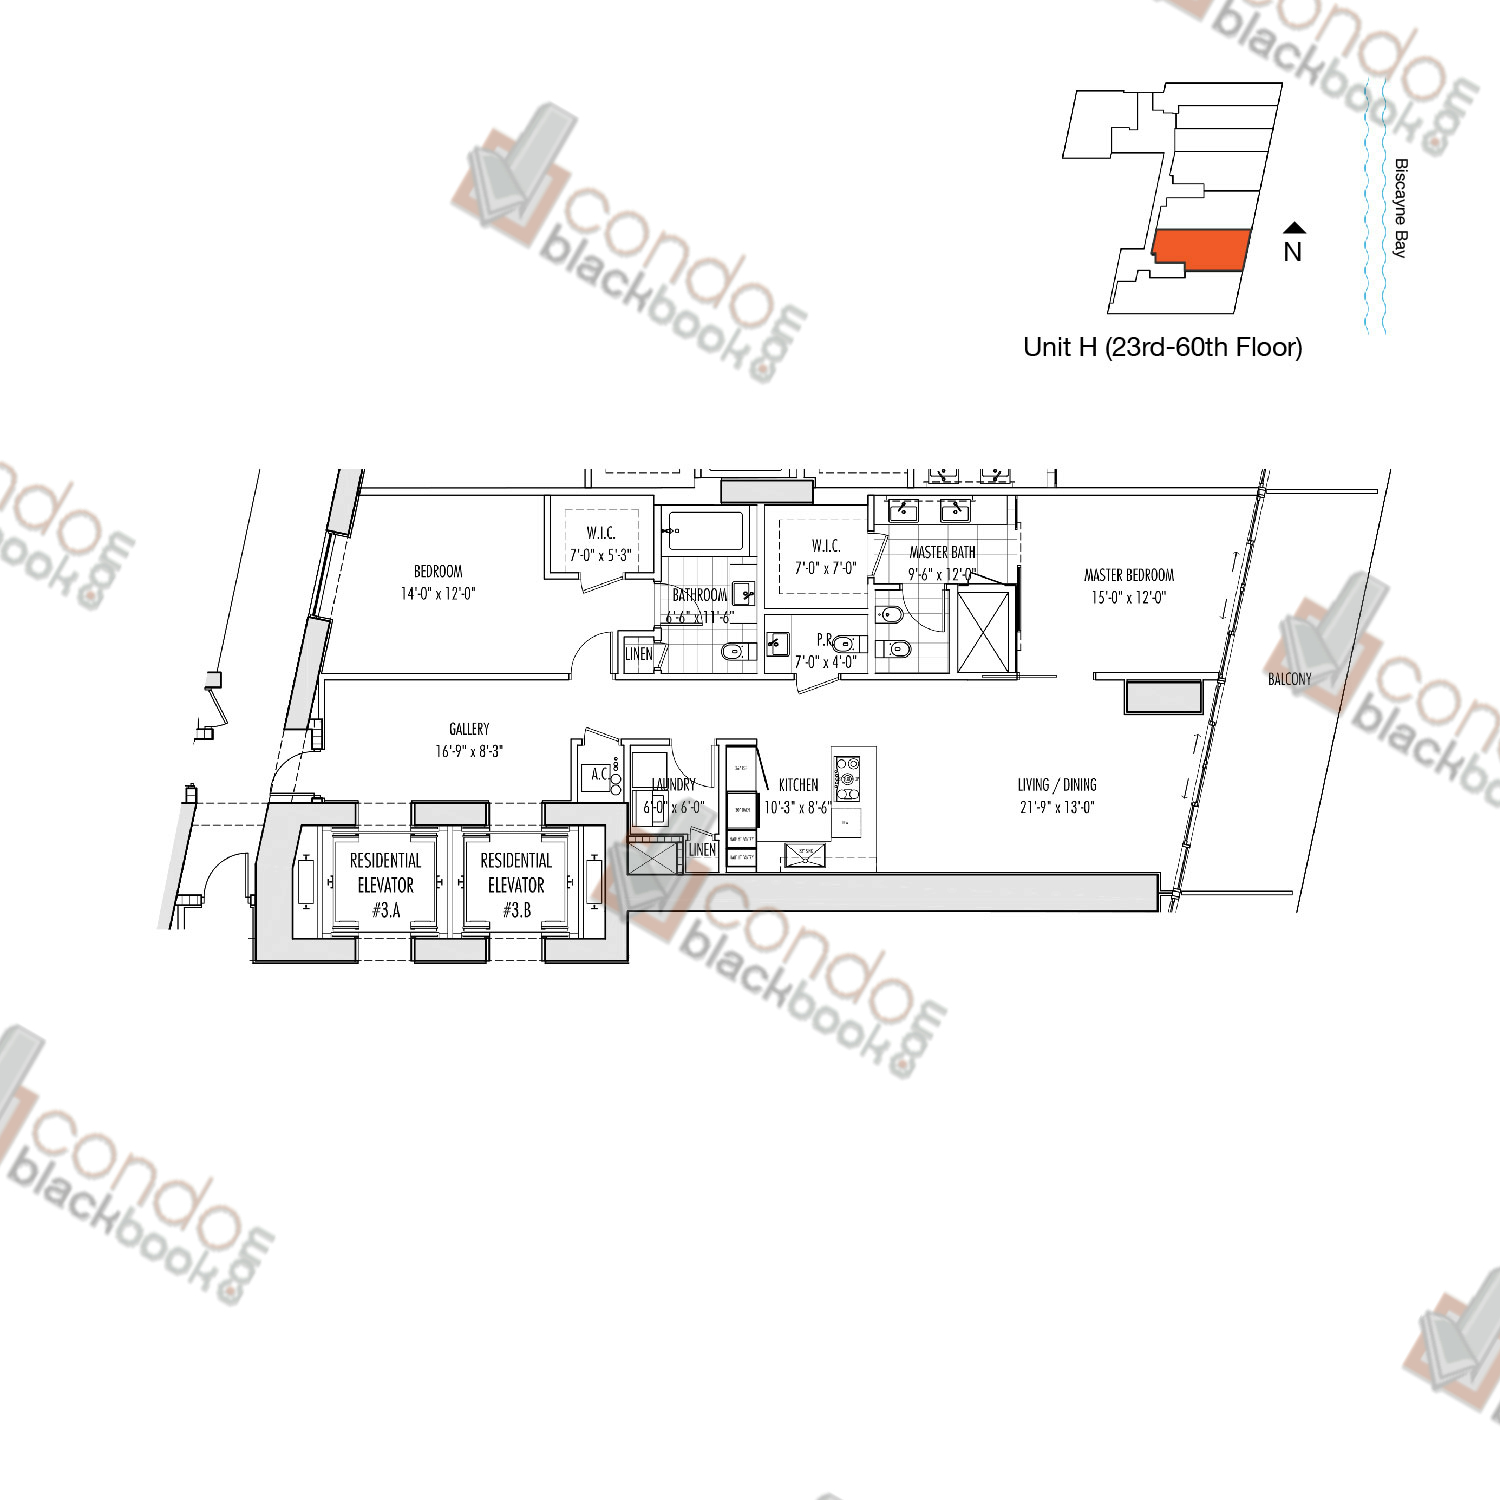 Floor plan for Marquis Downtown Miami Miami, model H, line 02, 2/2.5 bedrooms, 1,557 sq ft